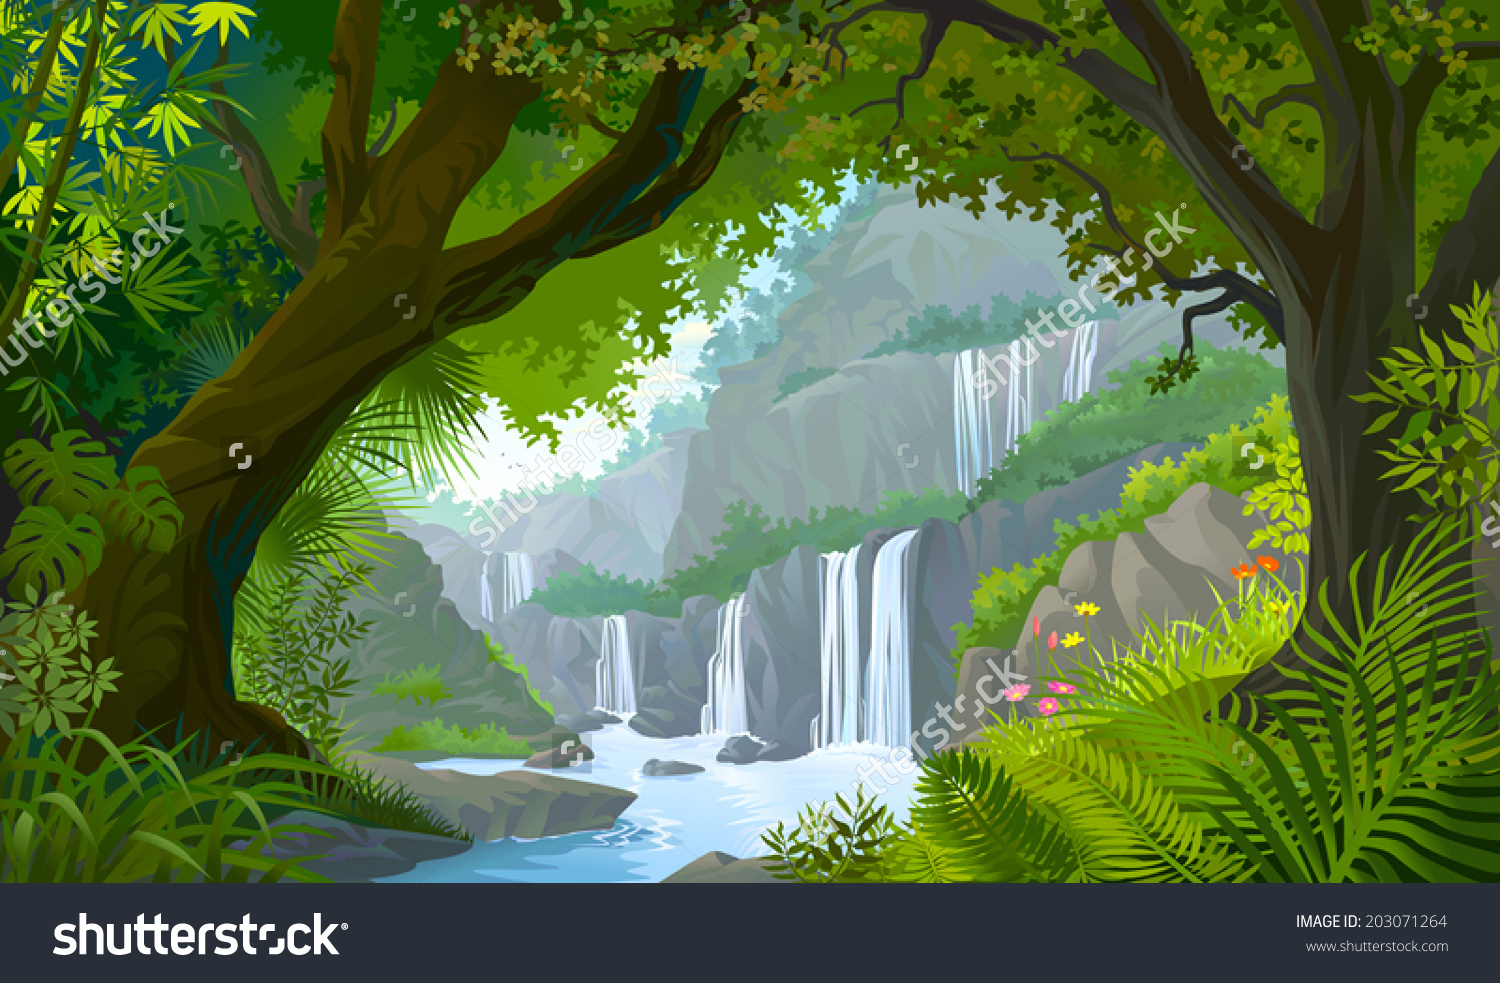 forest views clipart